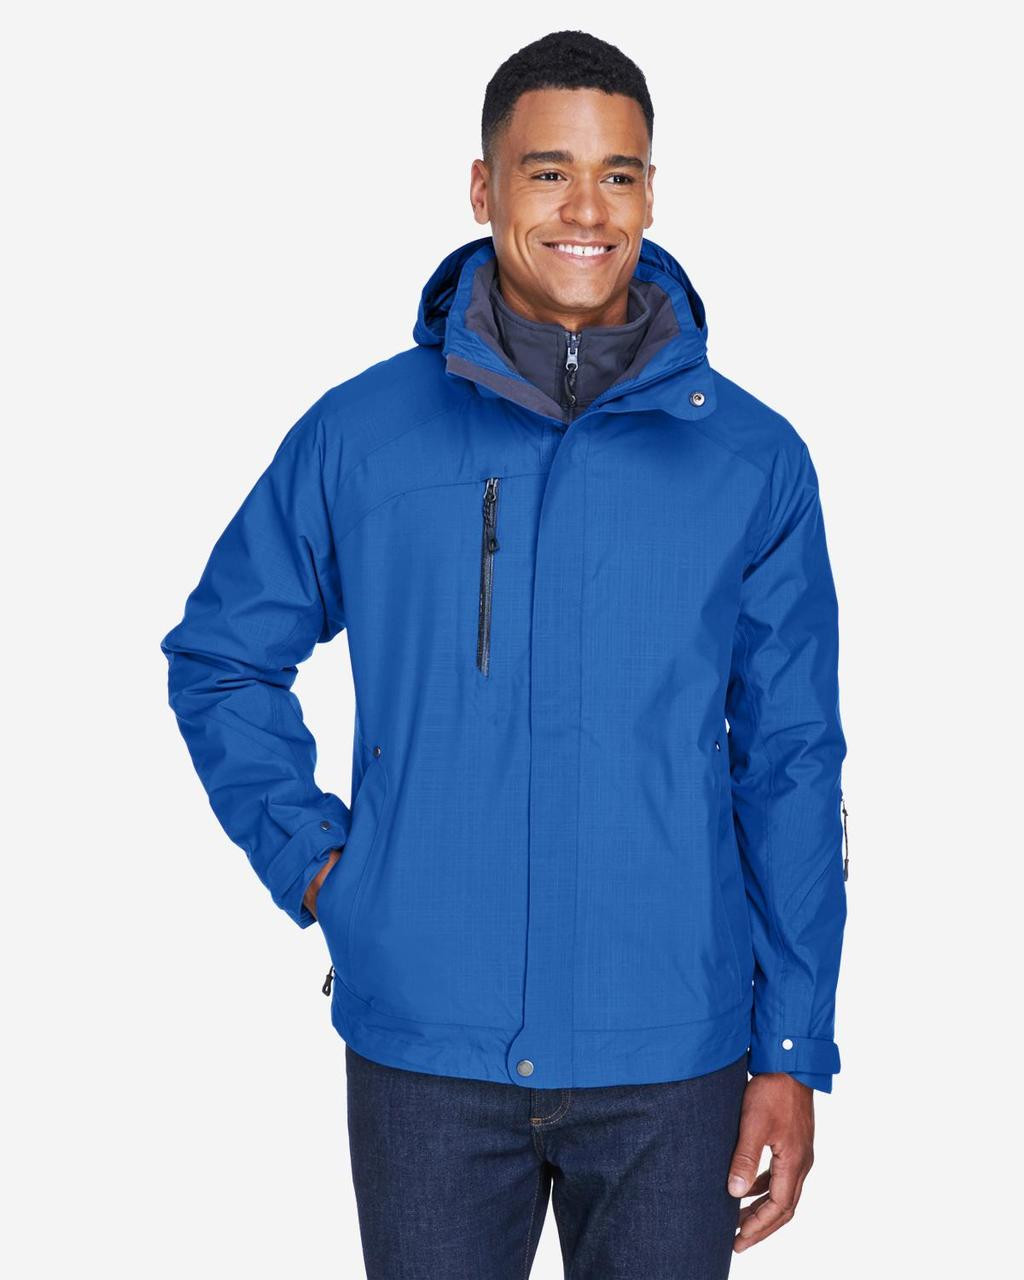 Nautical Blue - Front, 88178 North End Caprice 3-in-1 Jacket with Soft Shell Liner | BlankClothing.ca